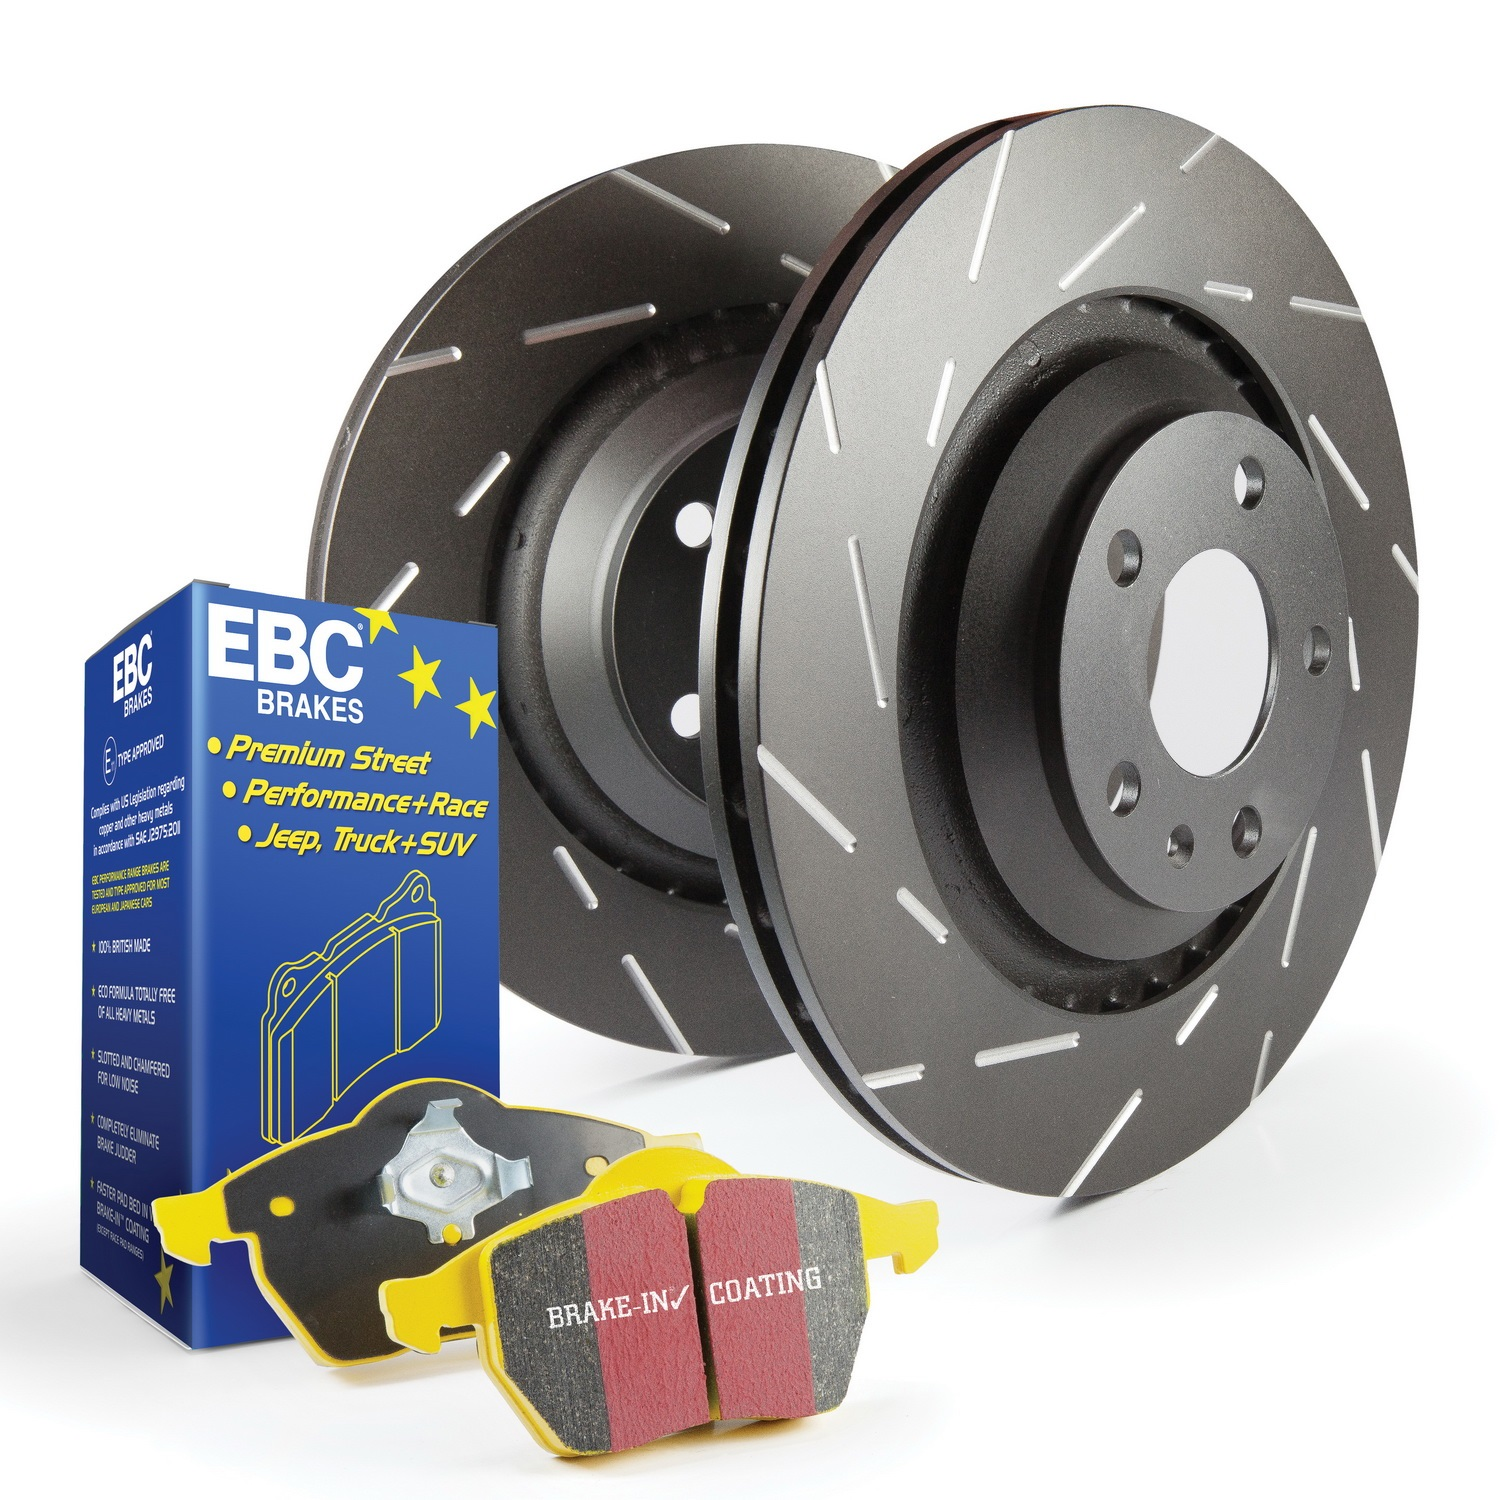 EBC Brakes S9KR1531 S9 Kits Yellowstuff and USR Rotors Fits 14-15 IS350